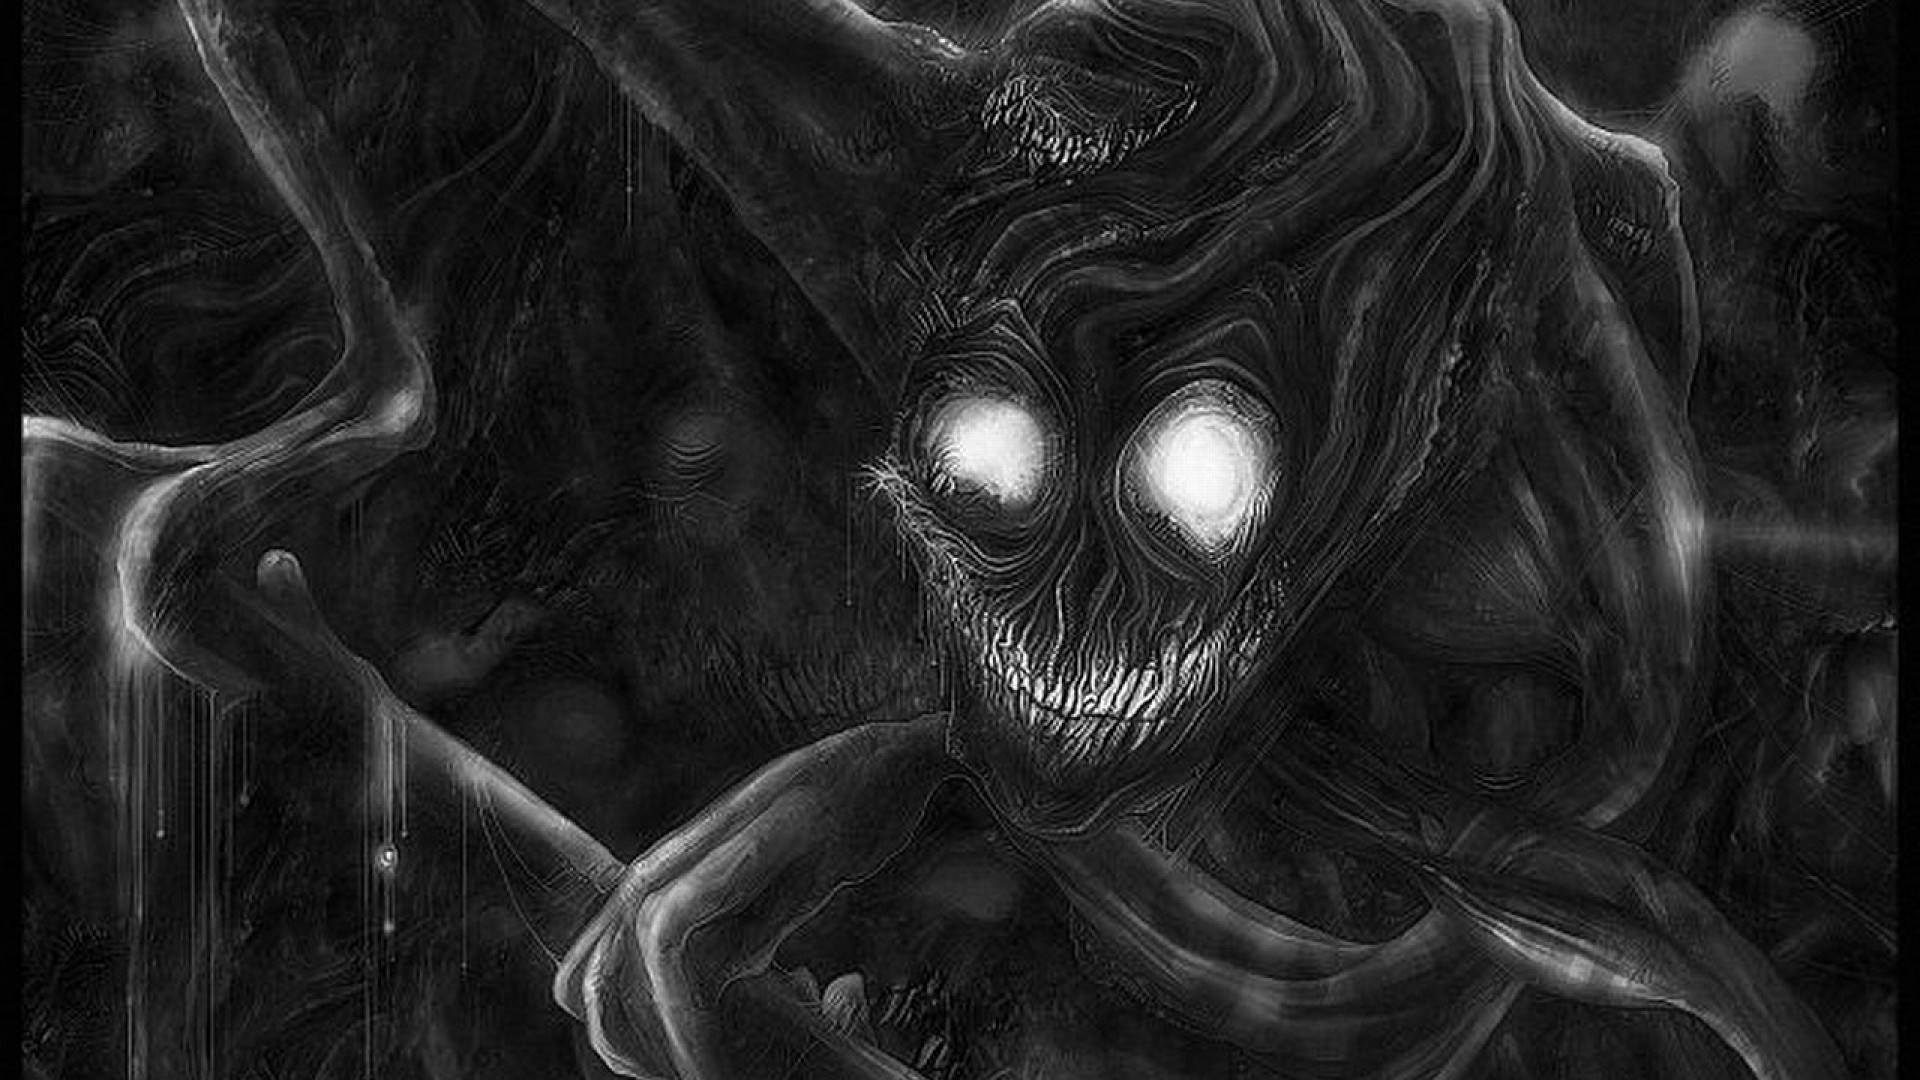 Scary Wallpapers - Free Android Application - Createapk.